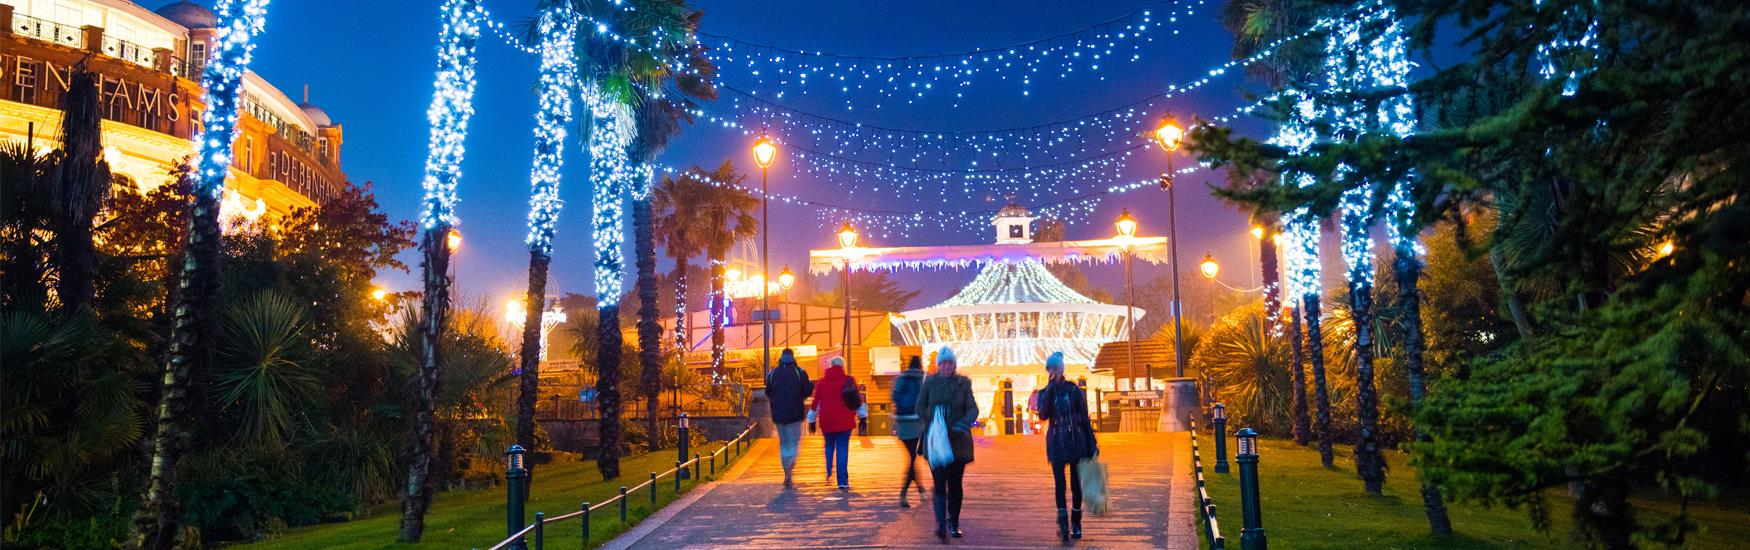 Celebrate Christmas in Bournemouth 15 Nov 2019 – 2 Jan 2020